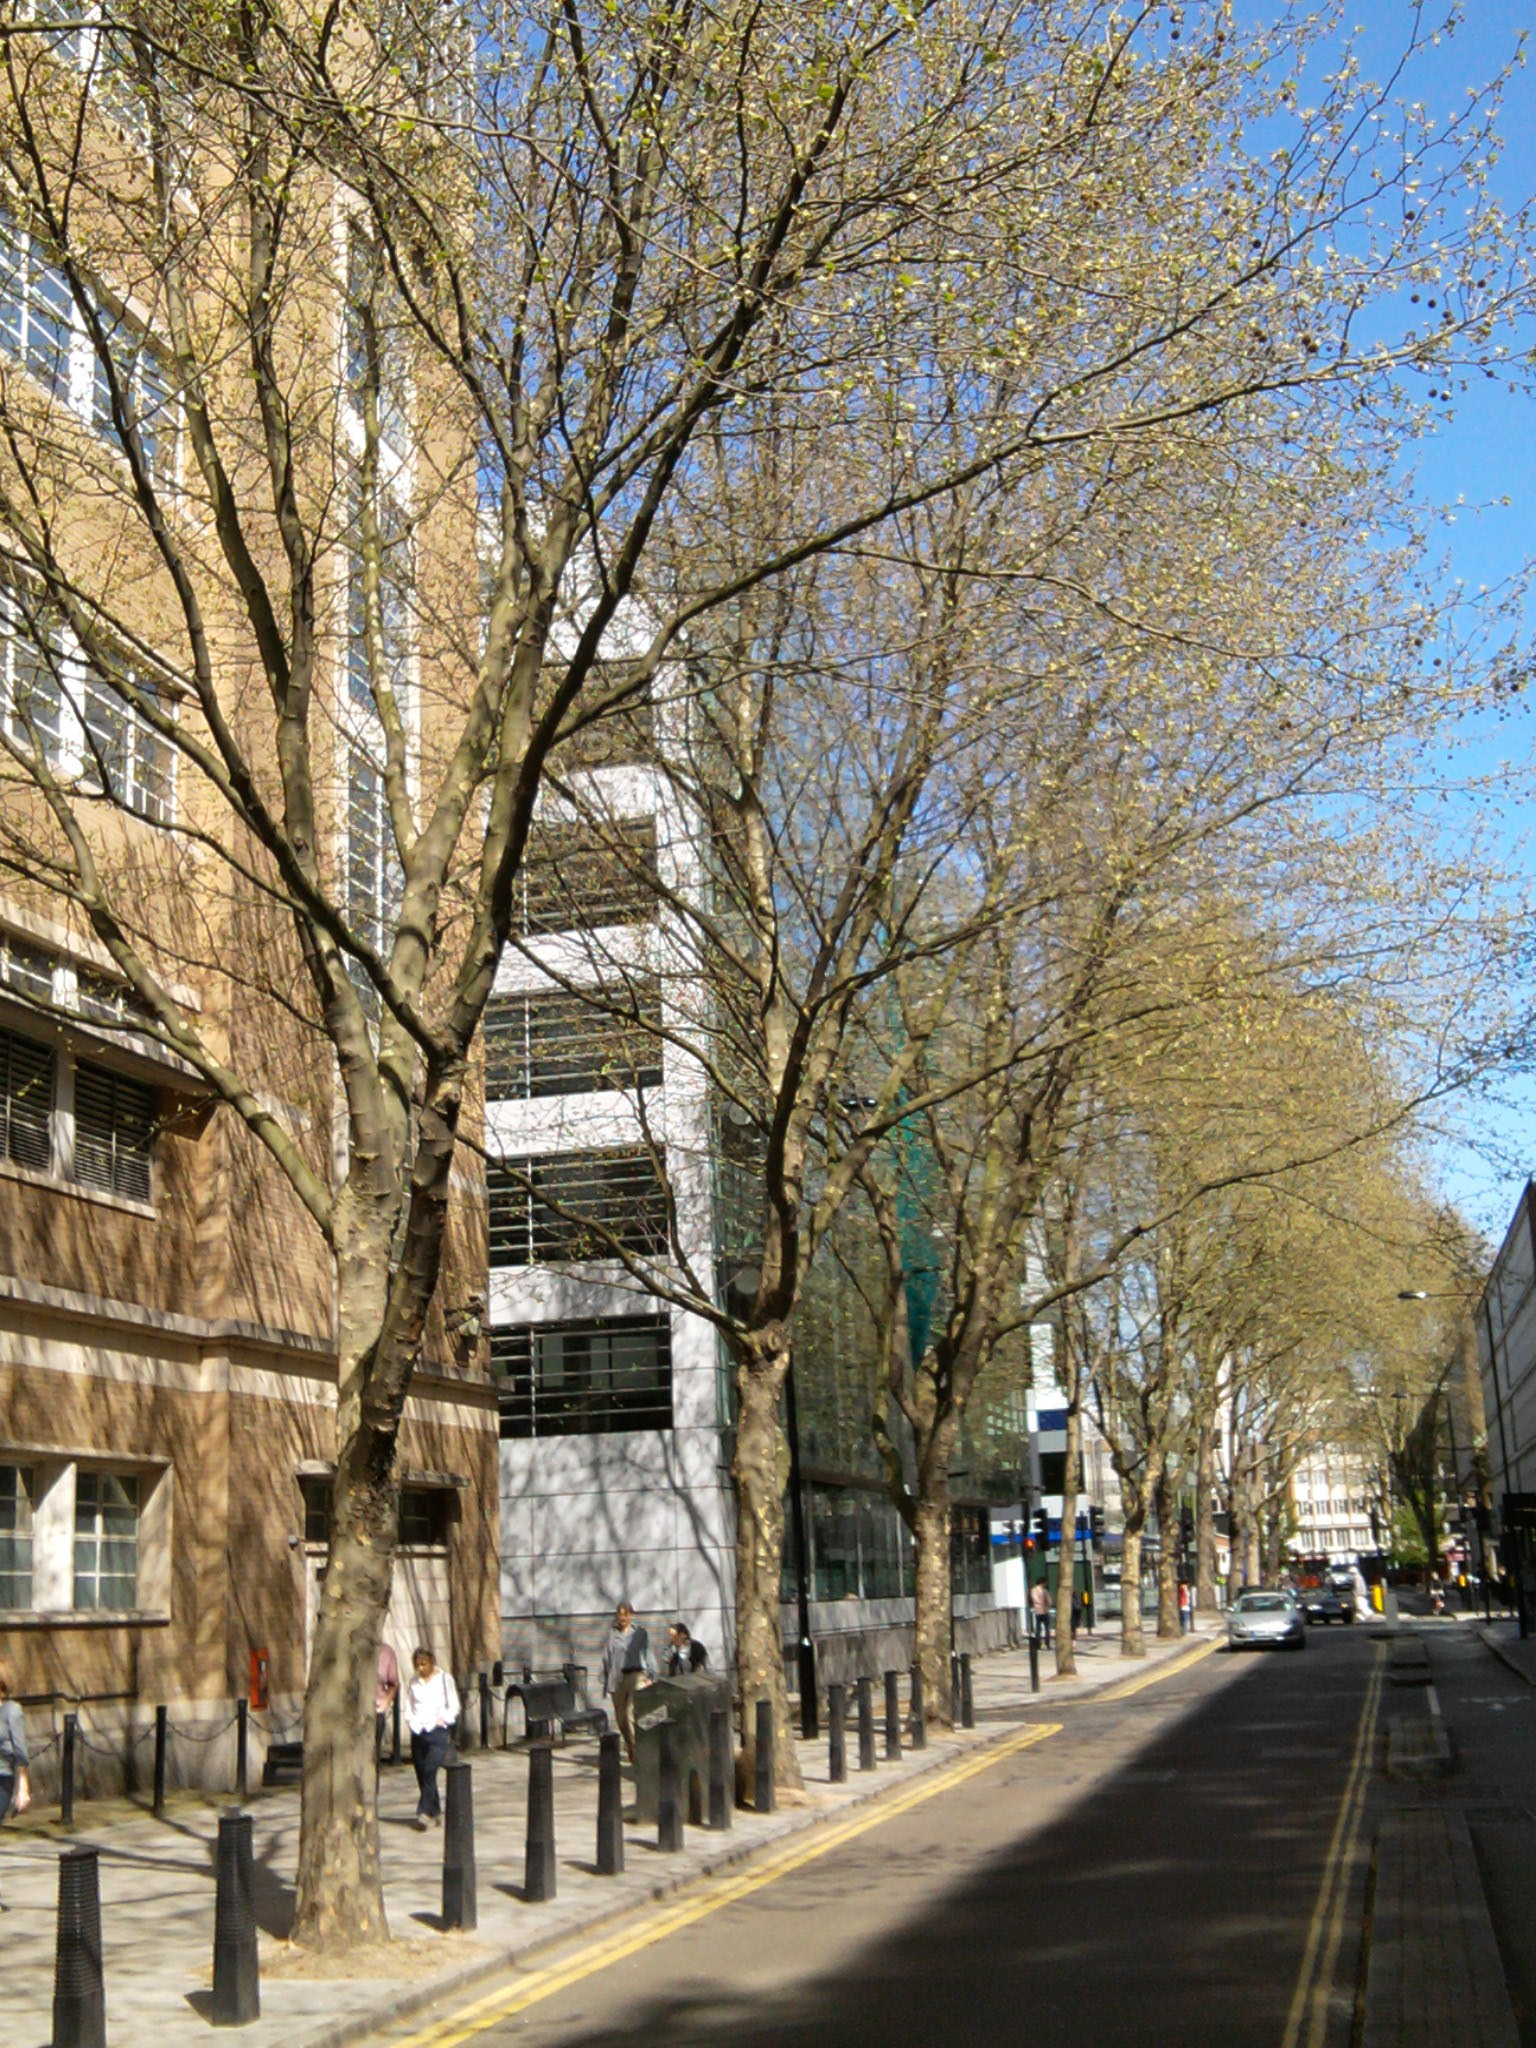 Row Of Trees Planted In One Street While Leafy Canopies